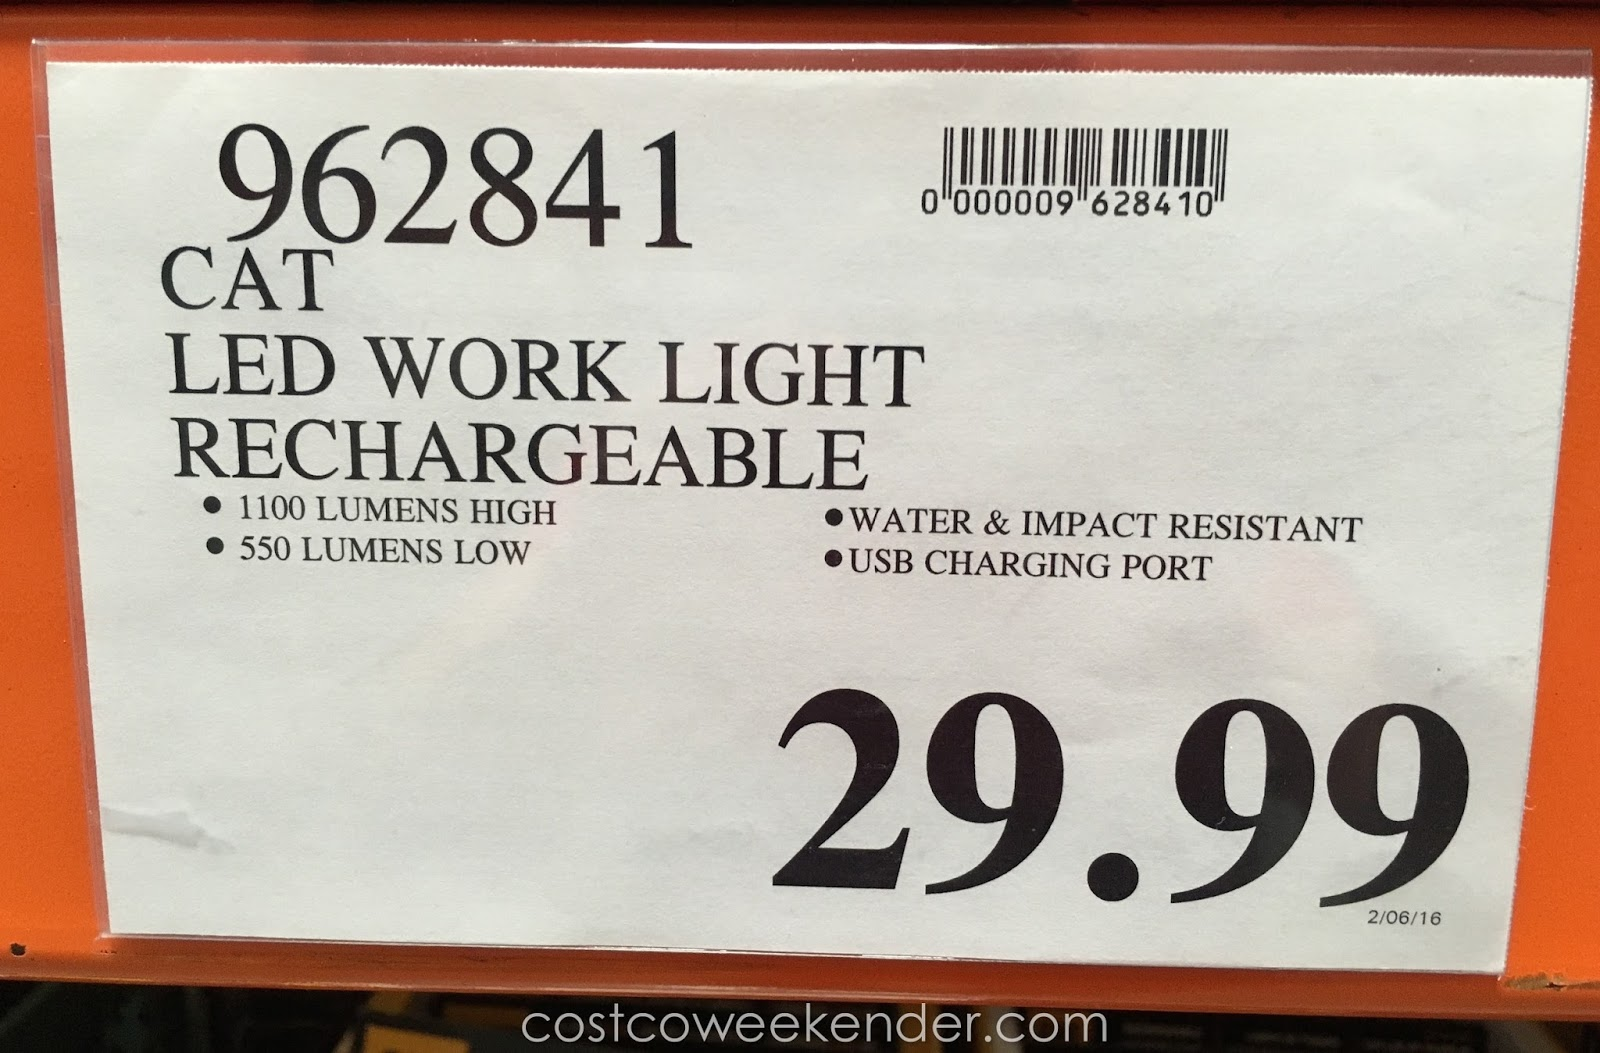 Cat Rechargeable LED Work Light : Costco Weekender